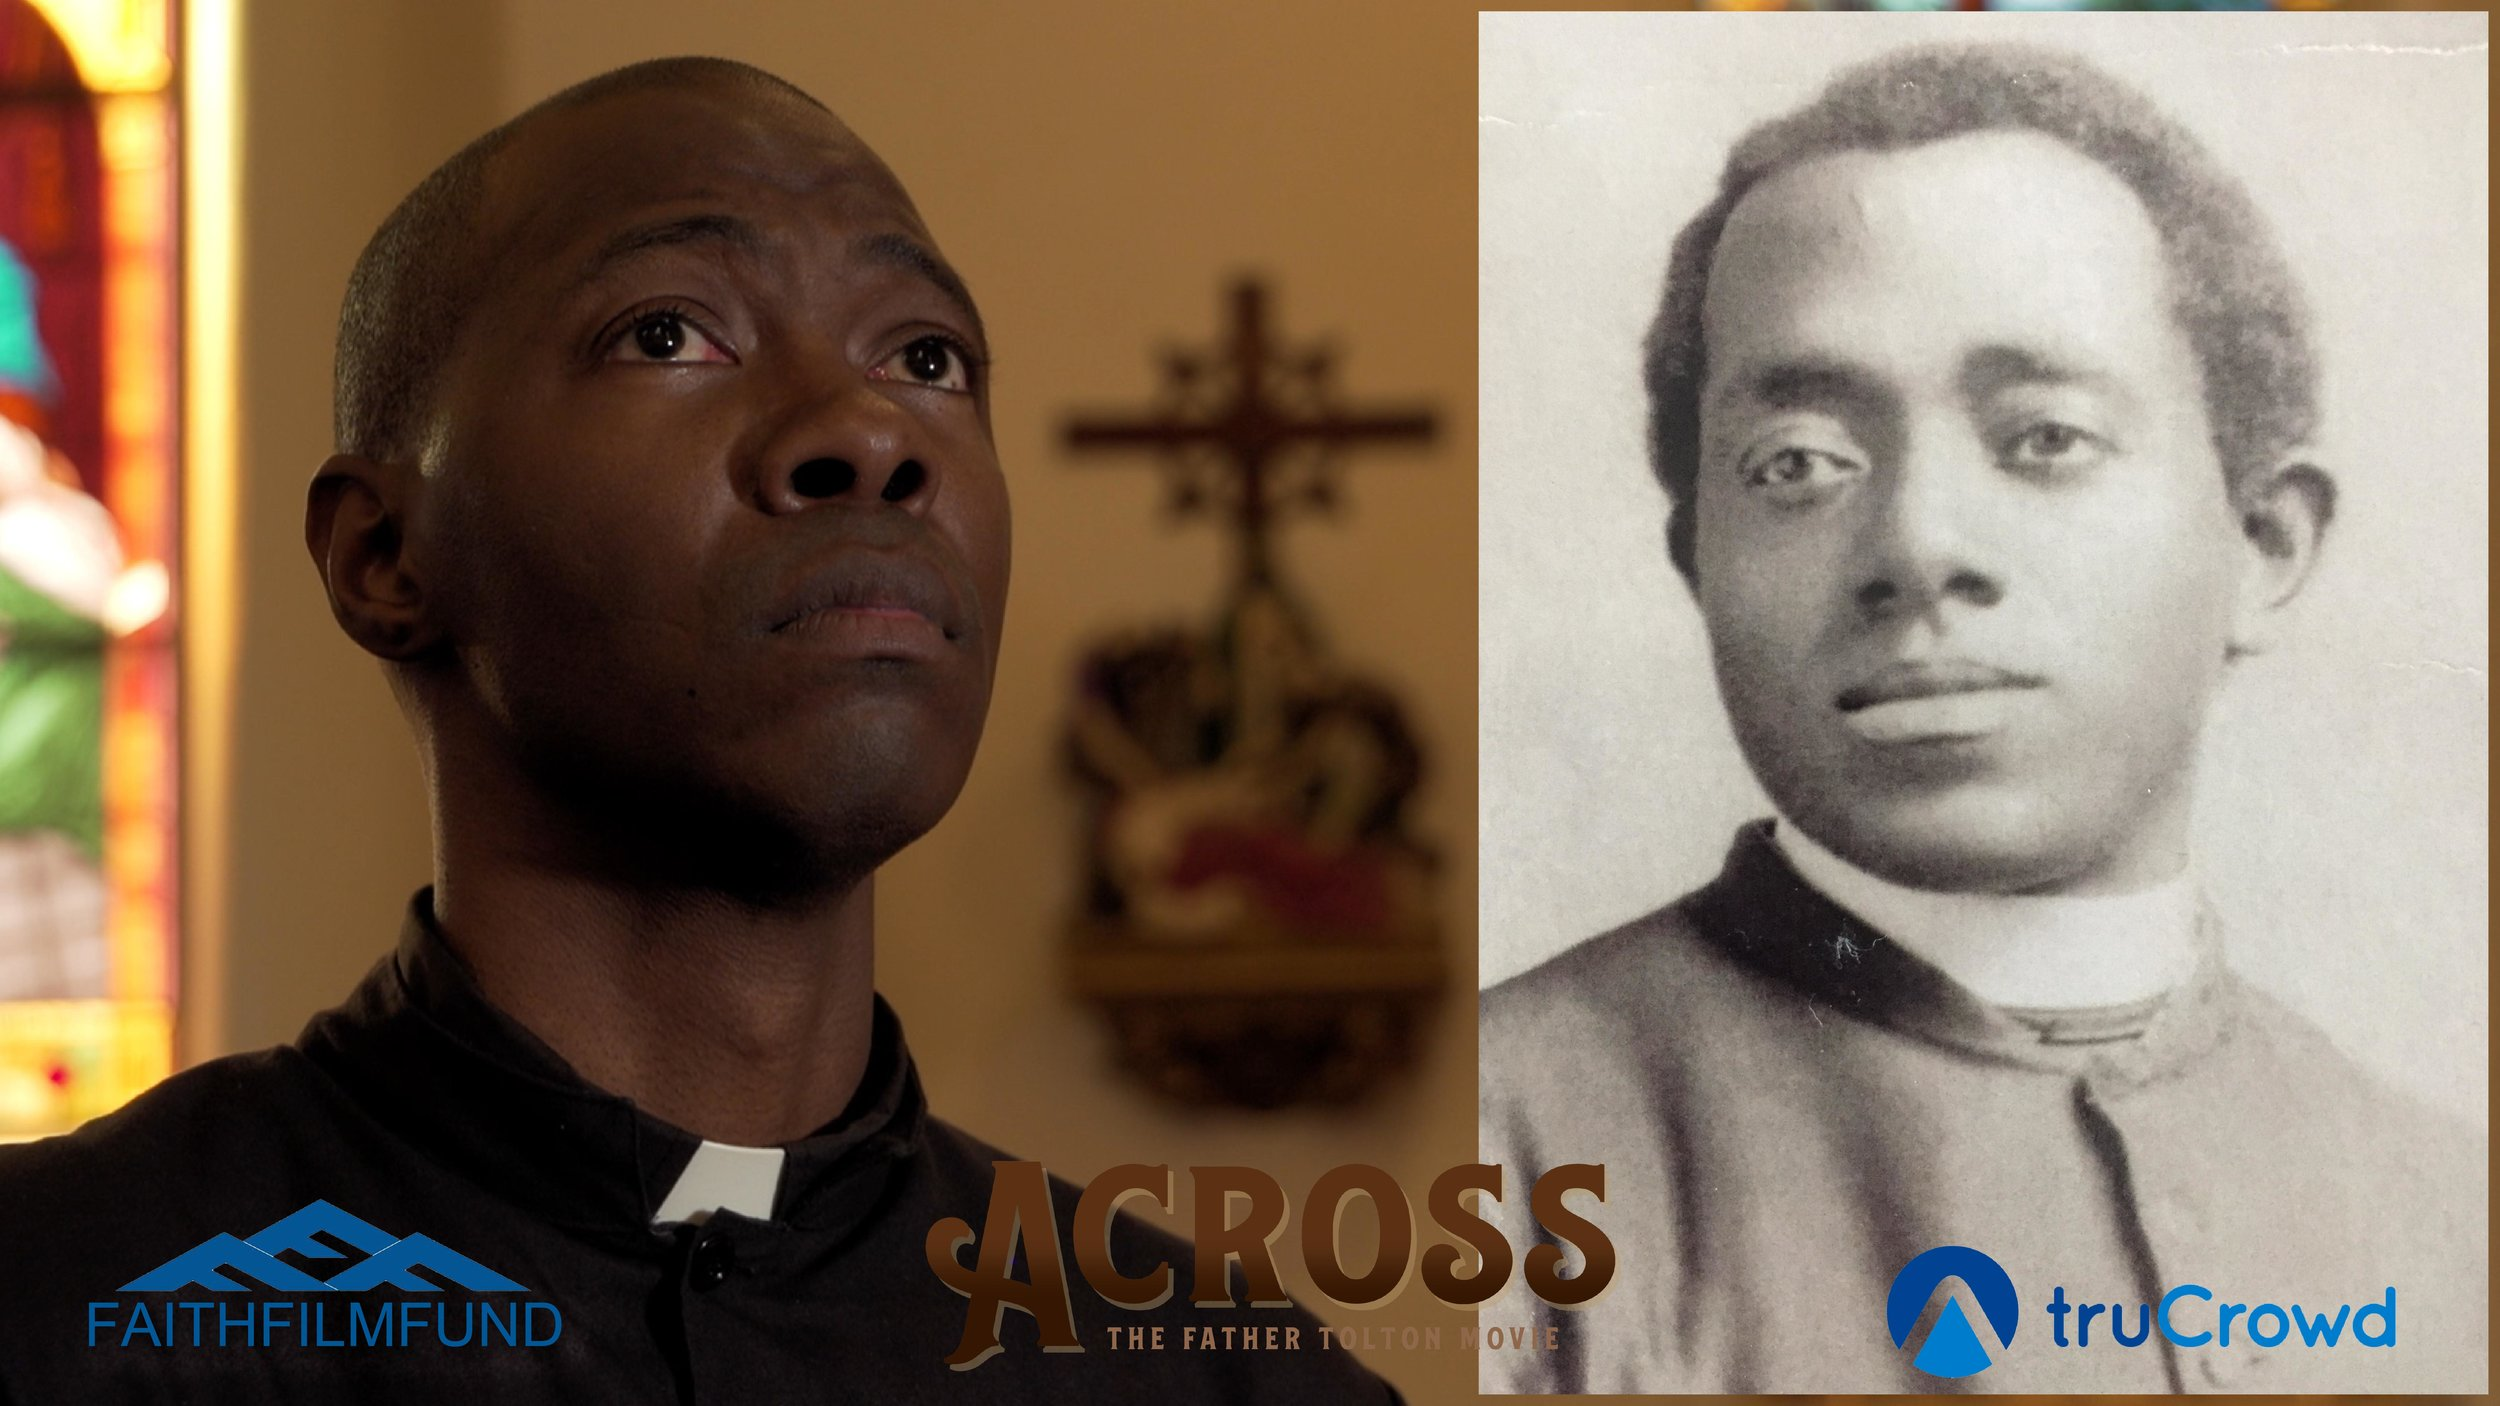 Shawn Whitsell next to a photo of the man he portrays, Father Tolton, in the short film,  Across .